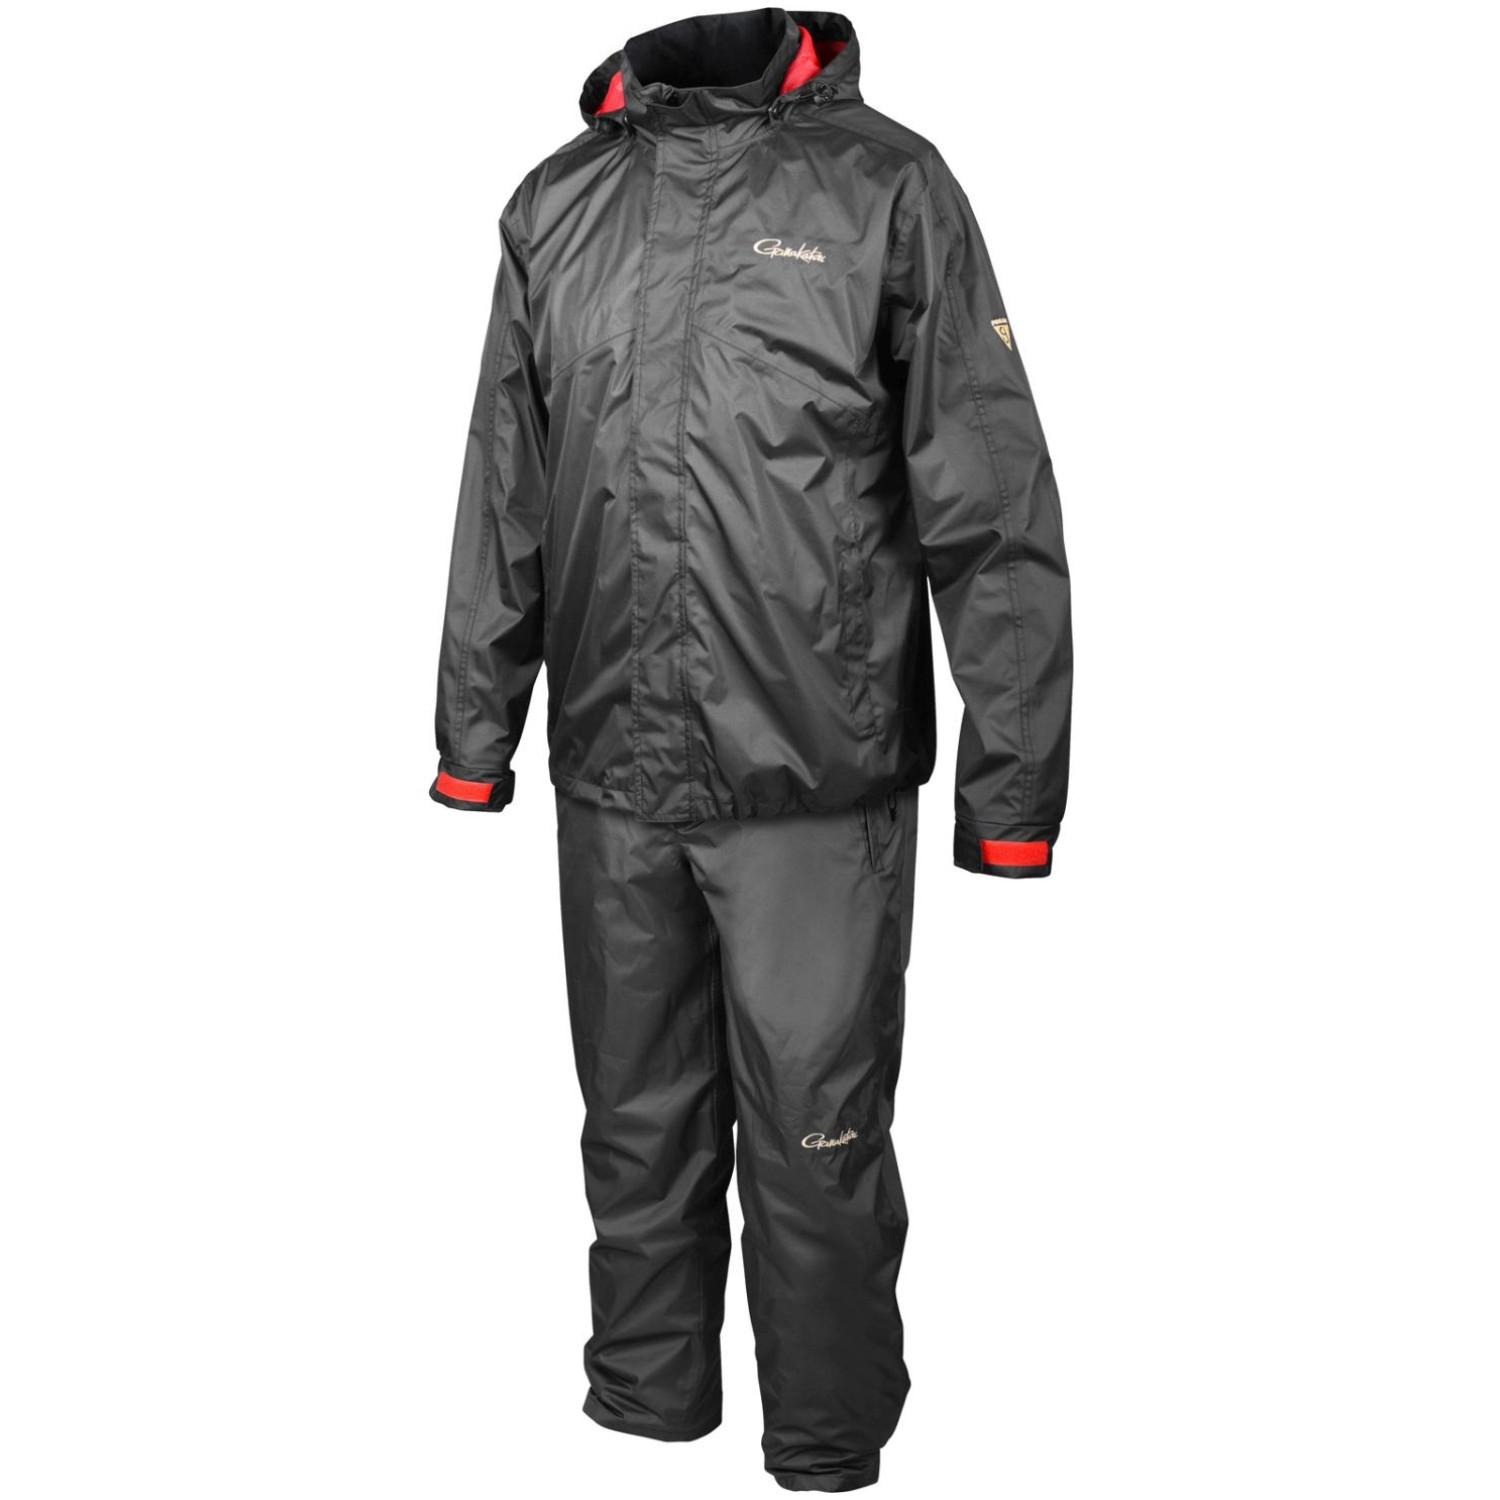 Anzüge GAMAKATSU Thermal Suits XXL Thermoanzug by TACKLE-DEALS !!!